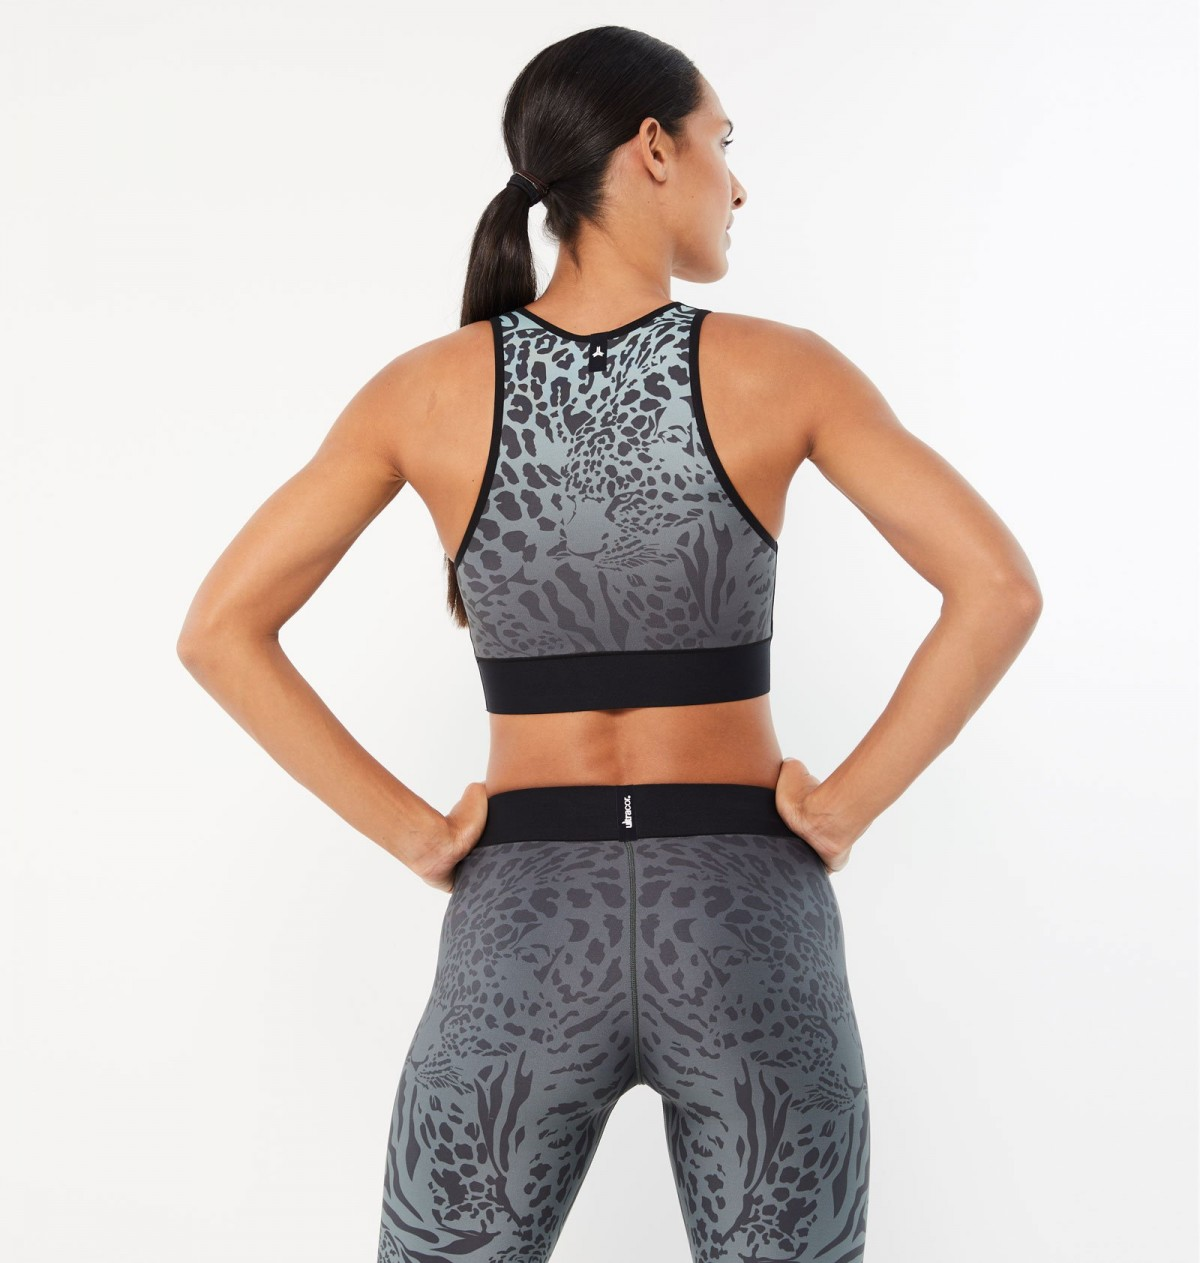 Mint and Graphite Panthera Crop Top